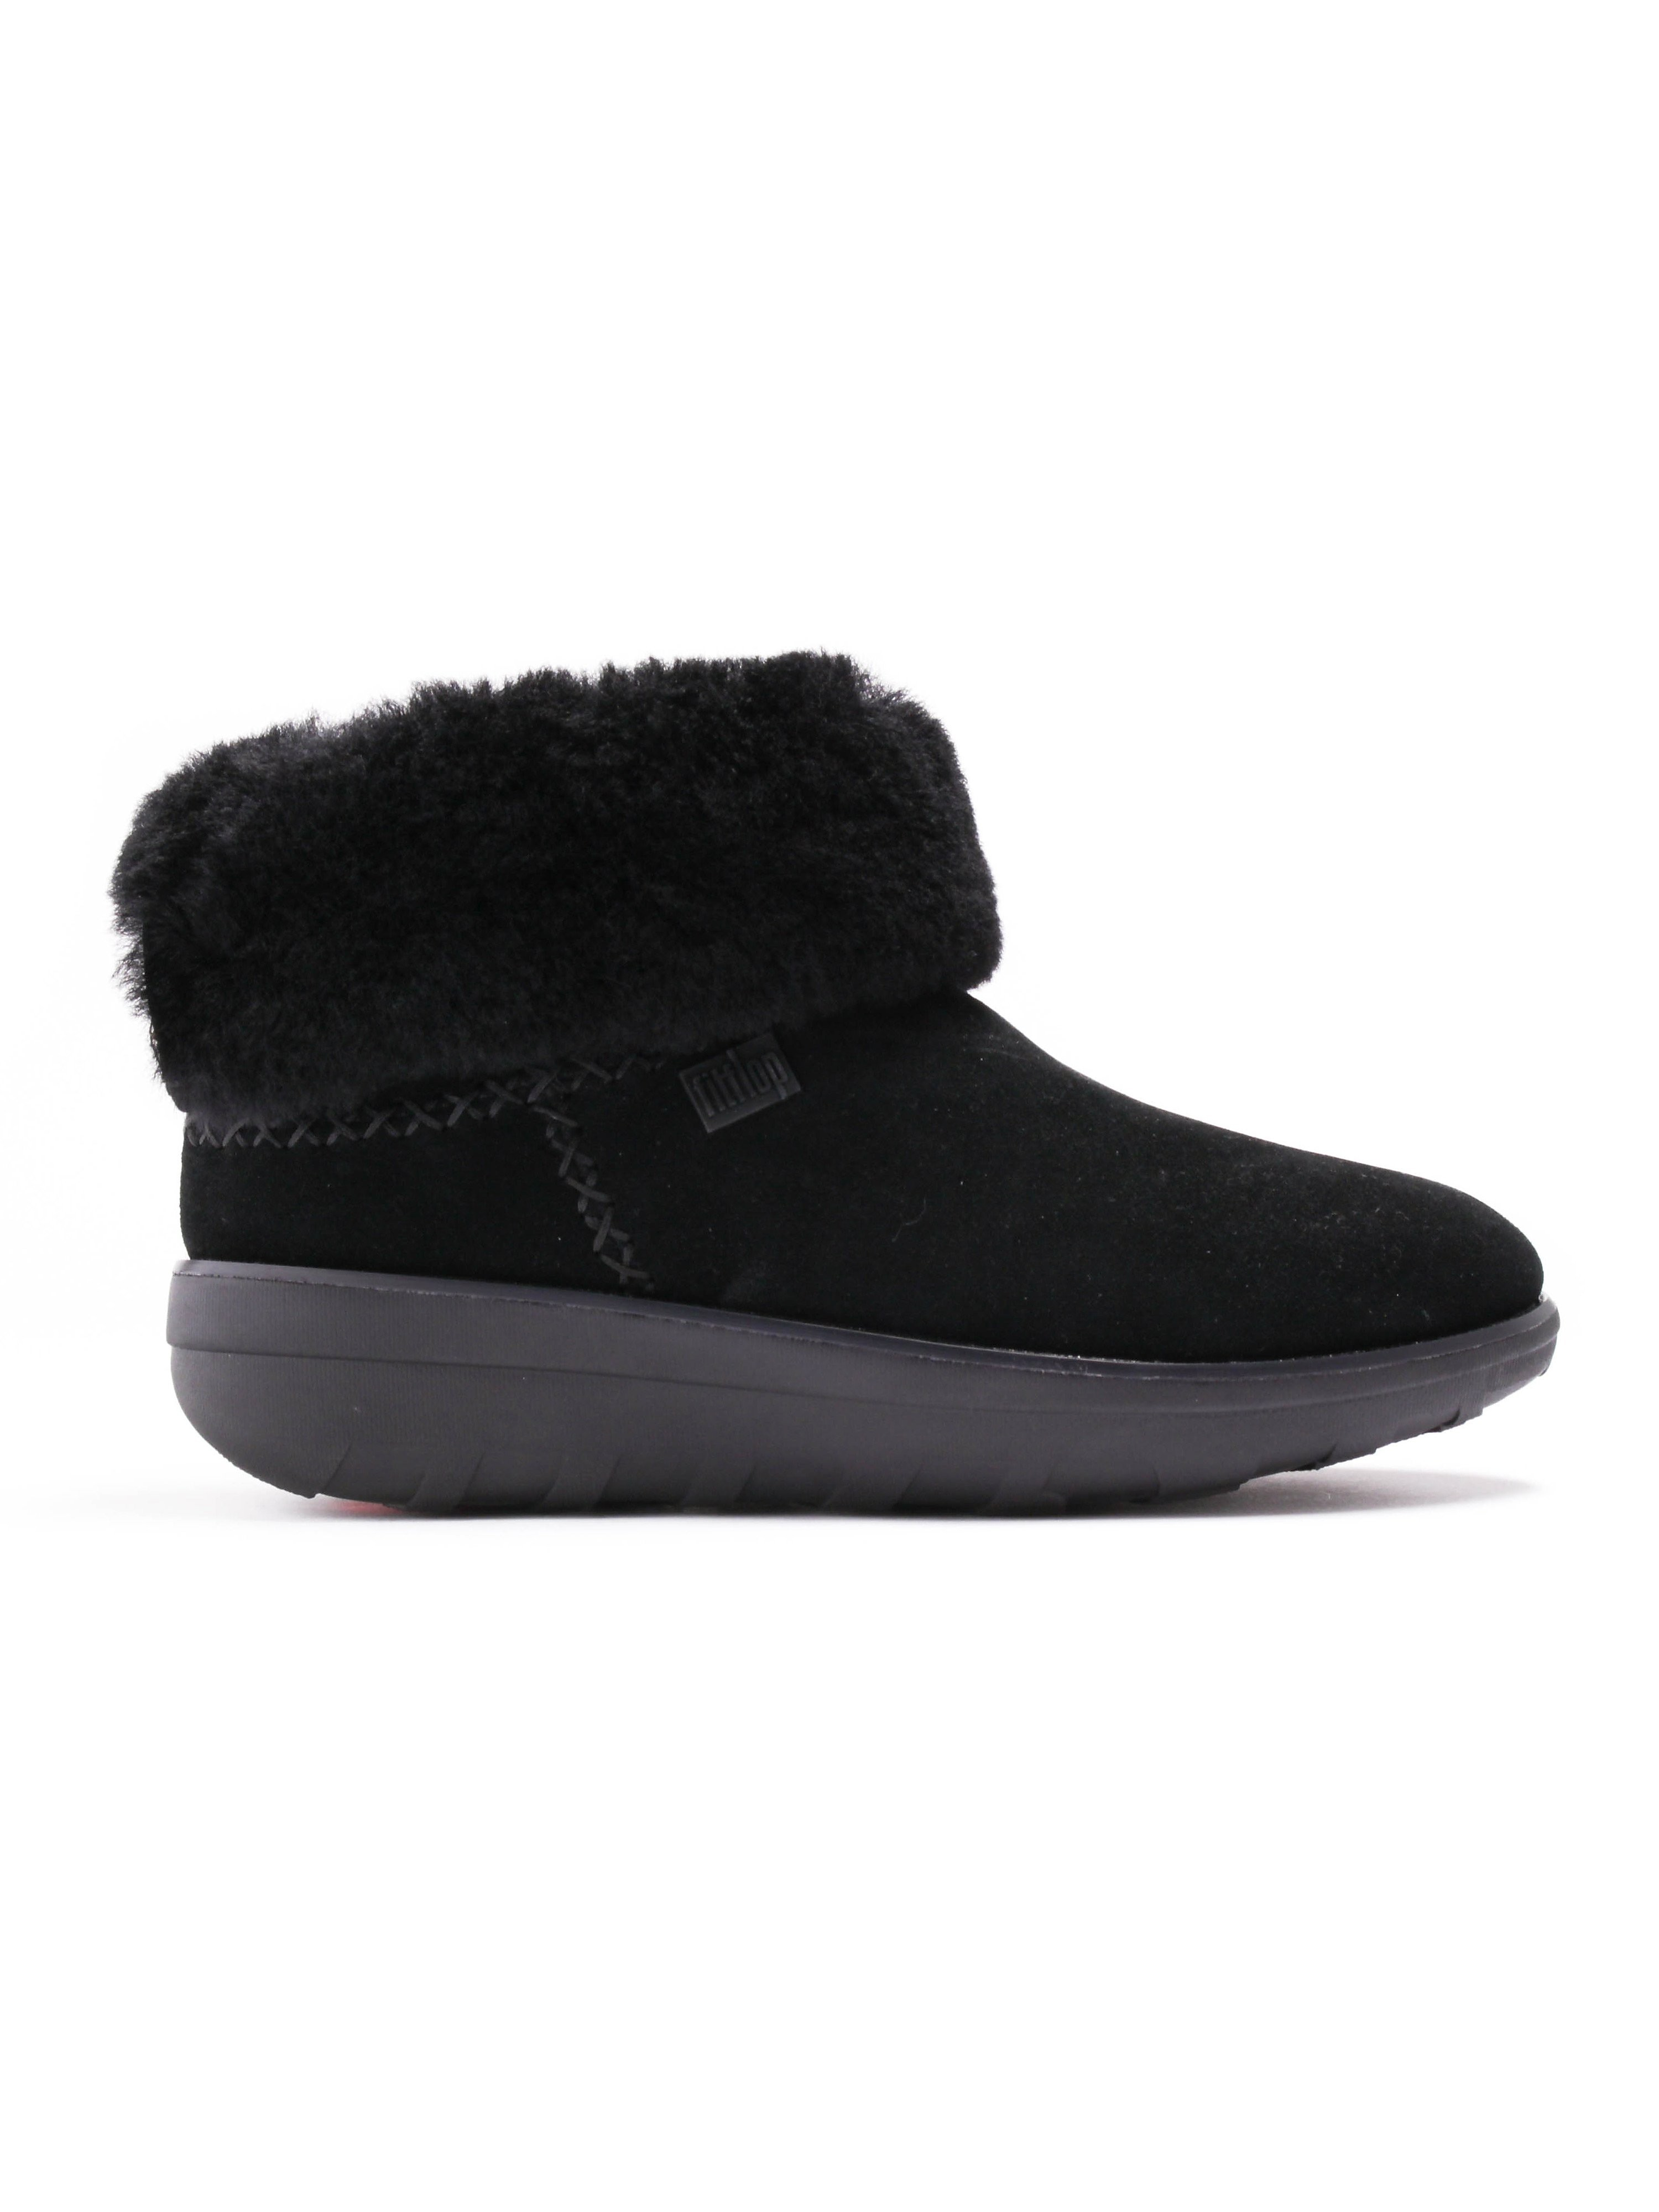 FitFlop Supercush Mukloaff? Shorty - All